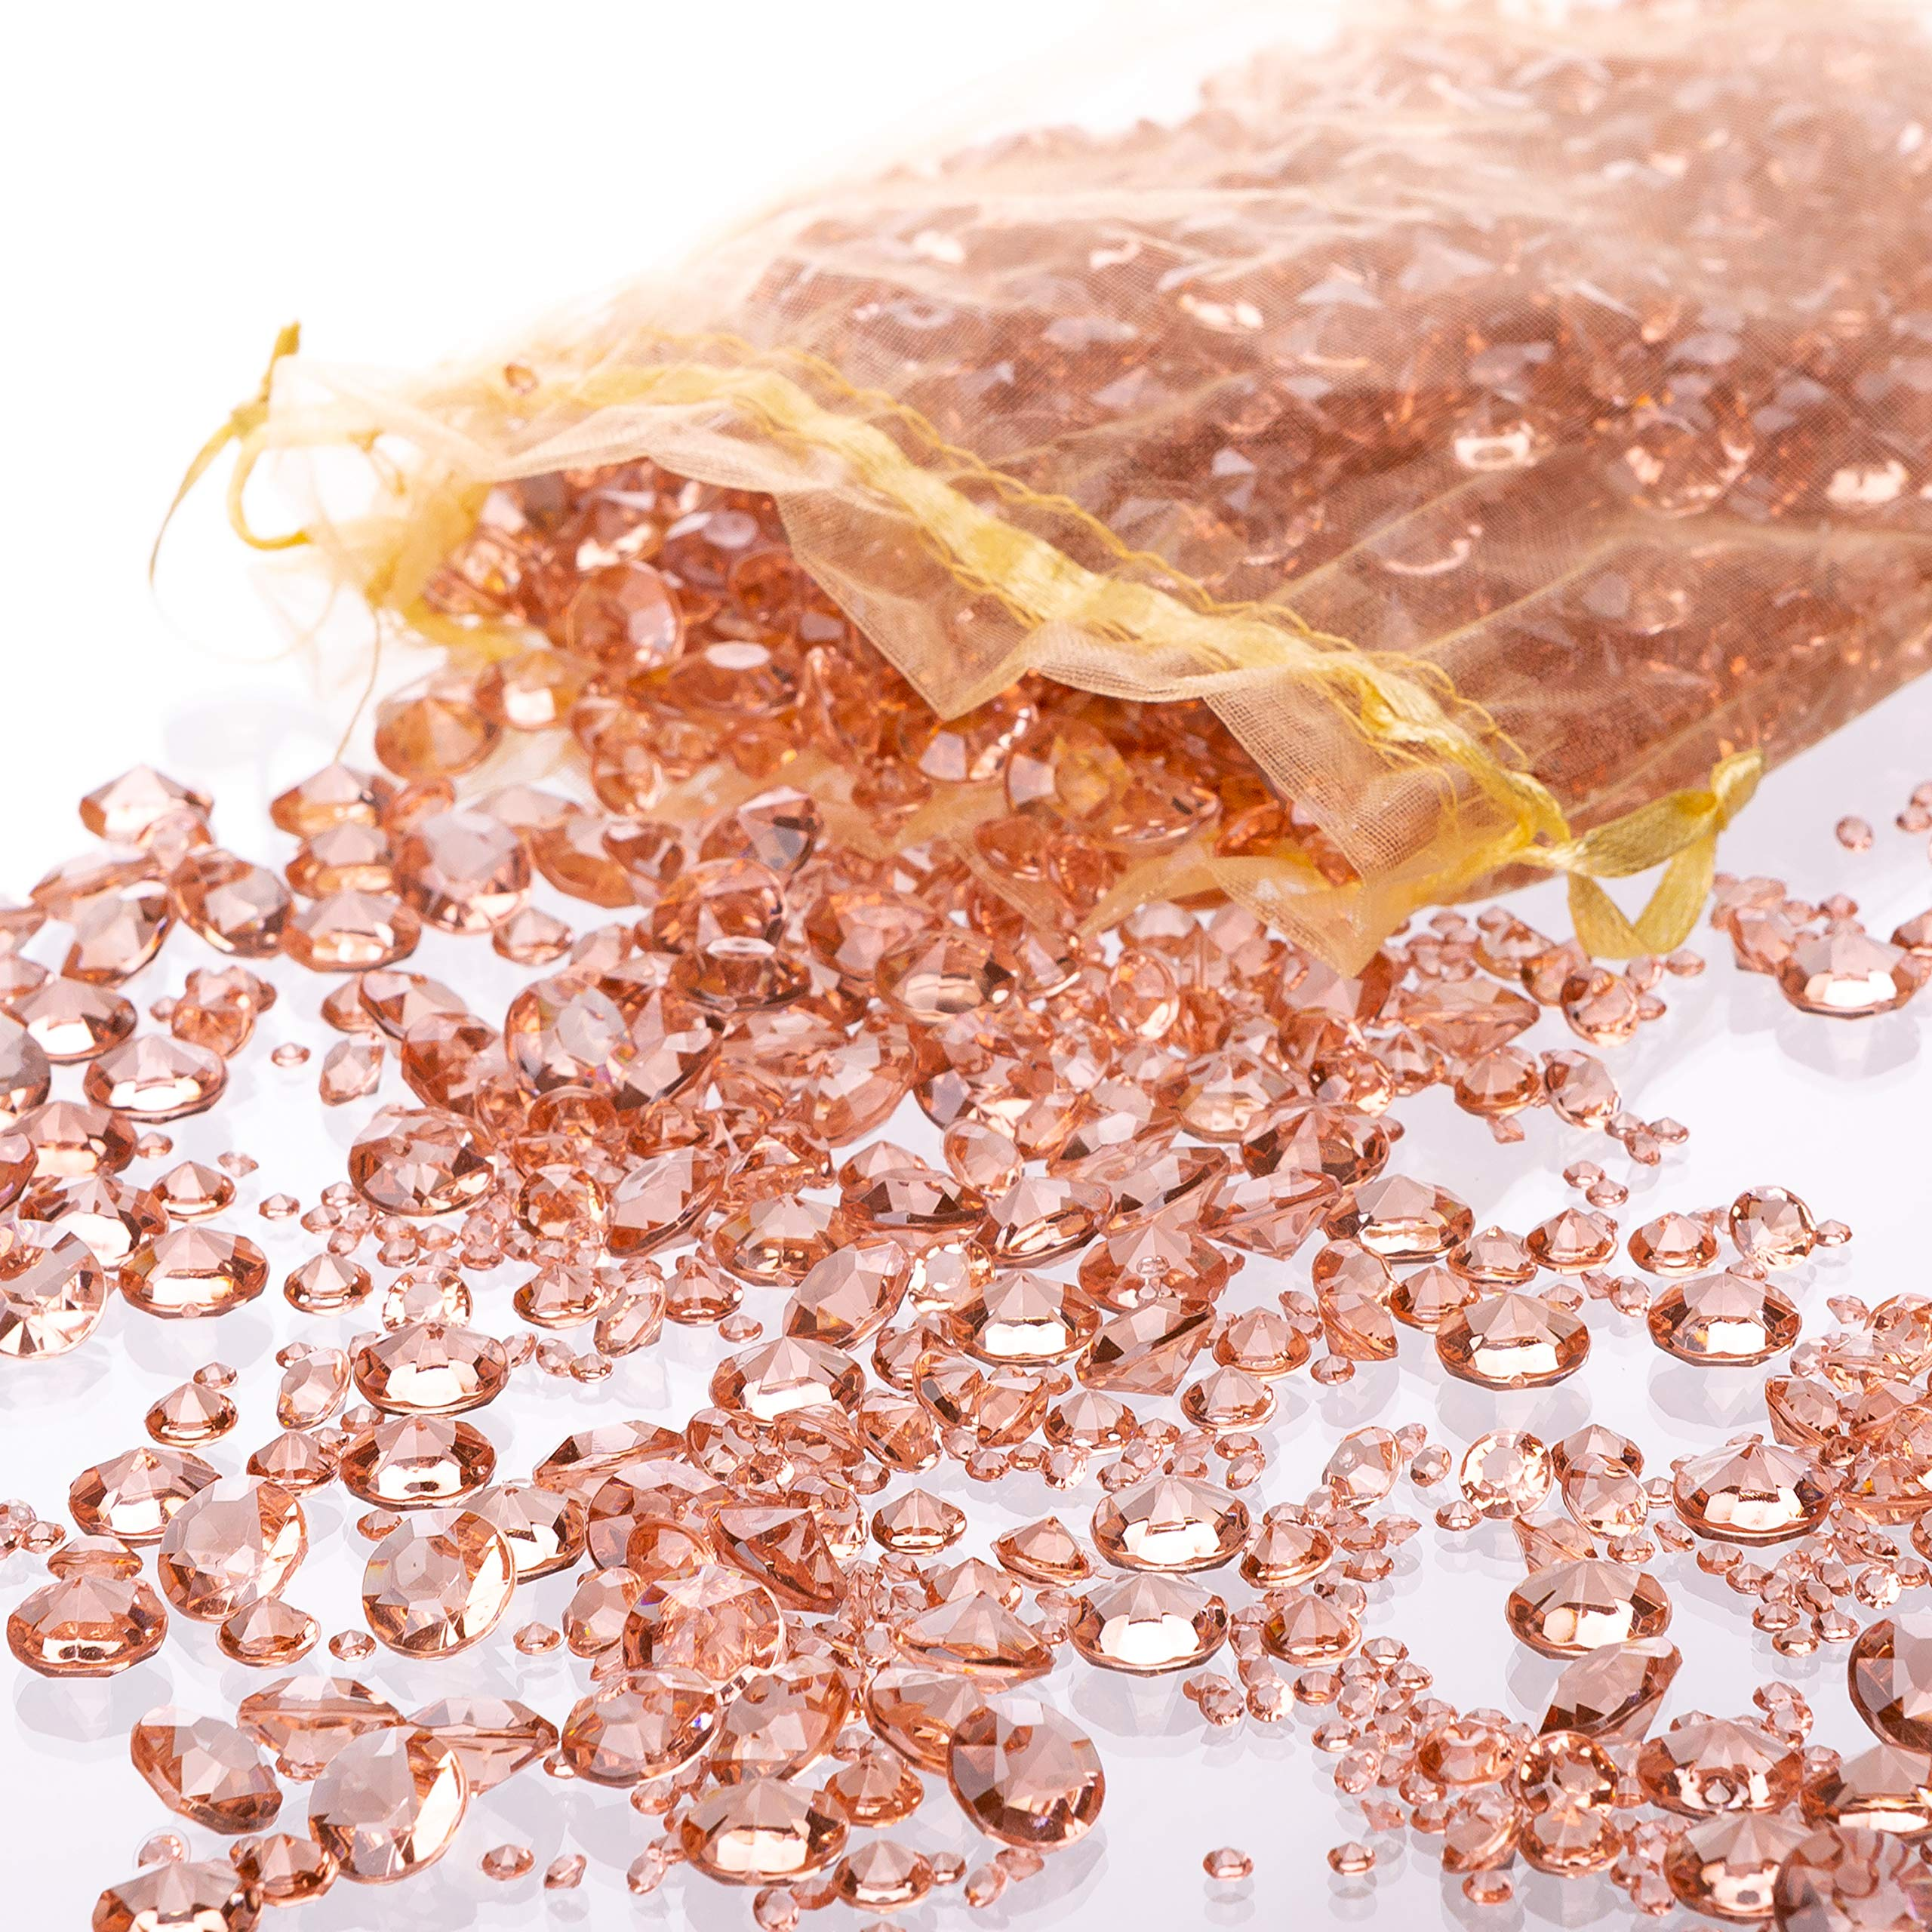 Luxury Rose Gold Diamond Table Confetti with over 3,000 Acrylic Scatter Gems in Three Different Sizes For Extra Sparkle